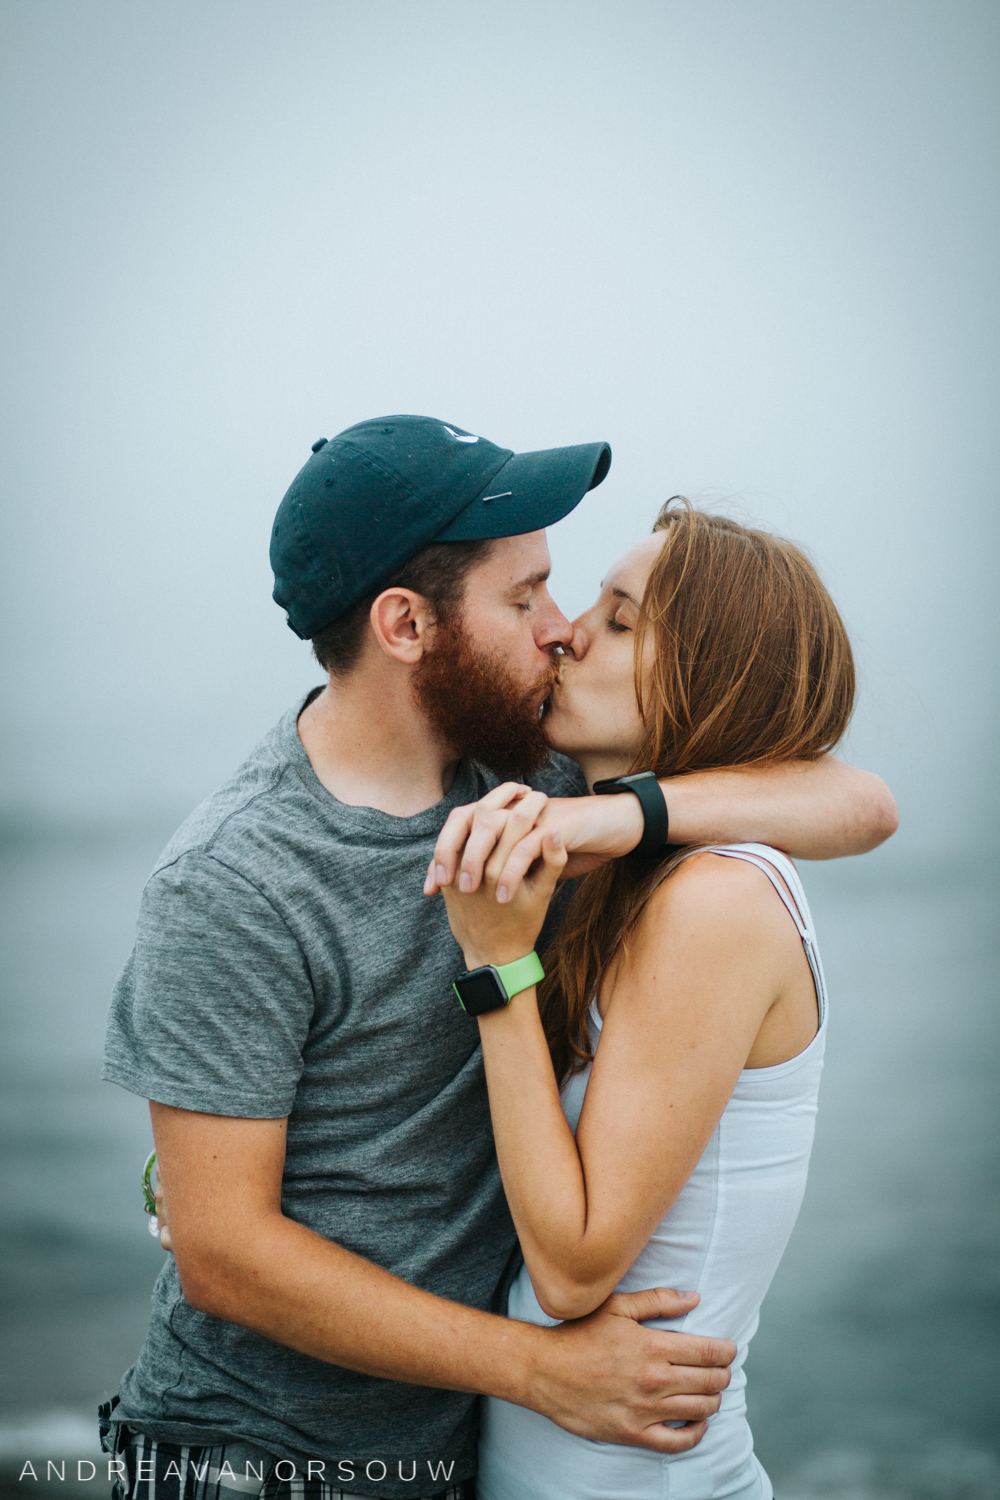 jamestown_rhode_island_Ri_engagement_session_photoshoot_wedding_outdoors_connecticut_wedding_new_england_photographer_beach_ocea_state_cliff.jpg